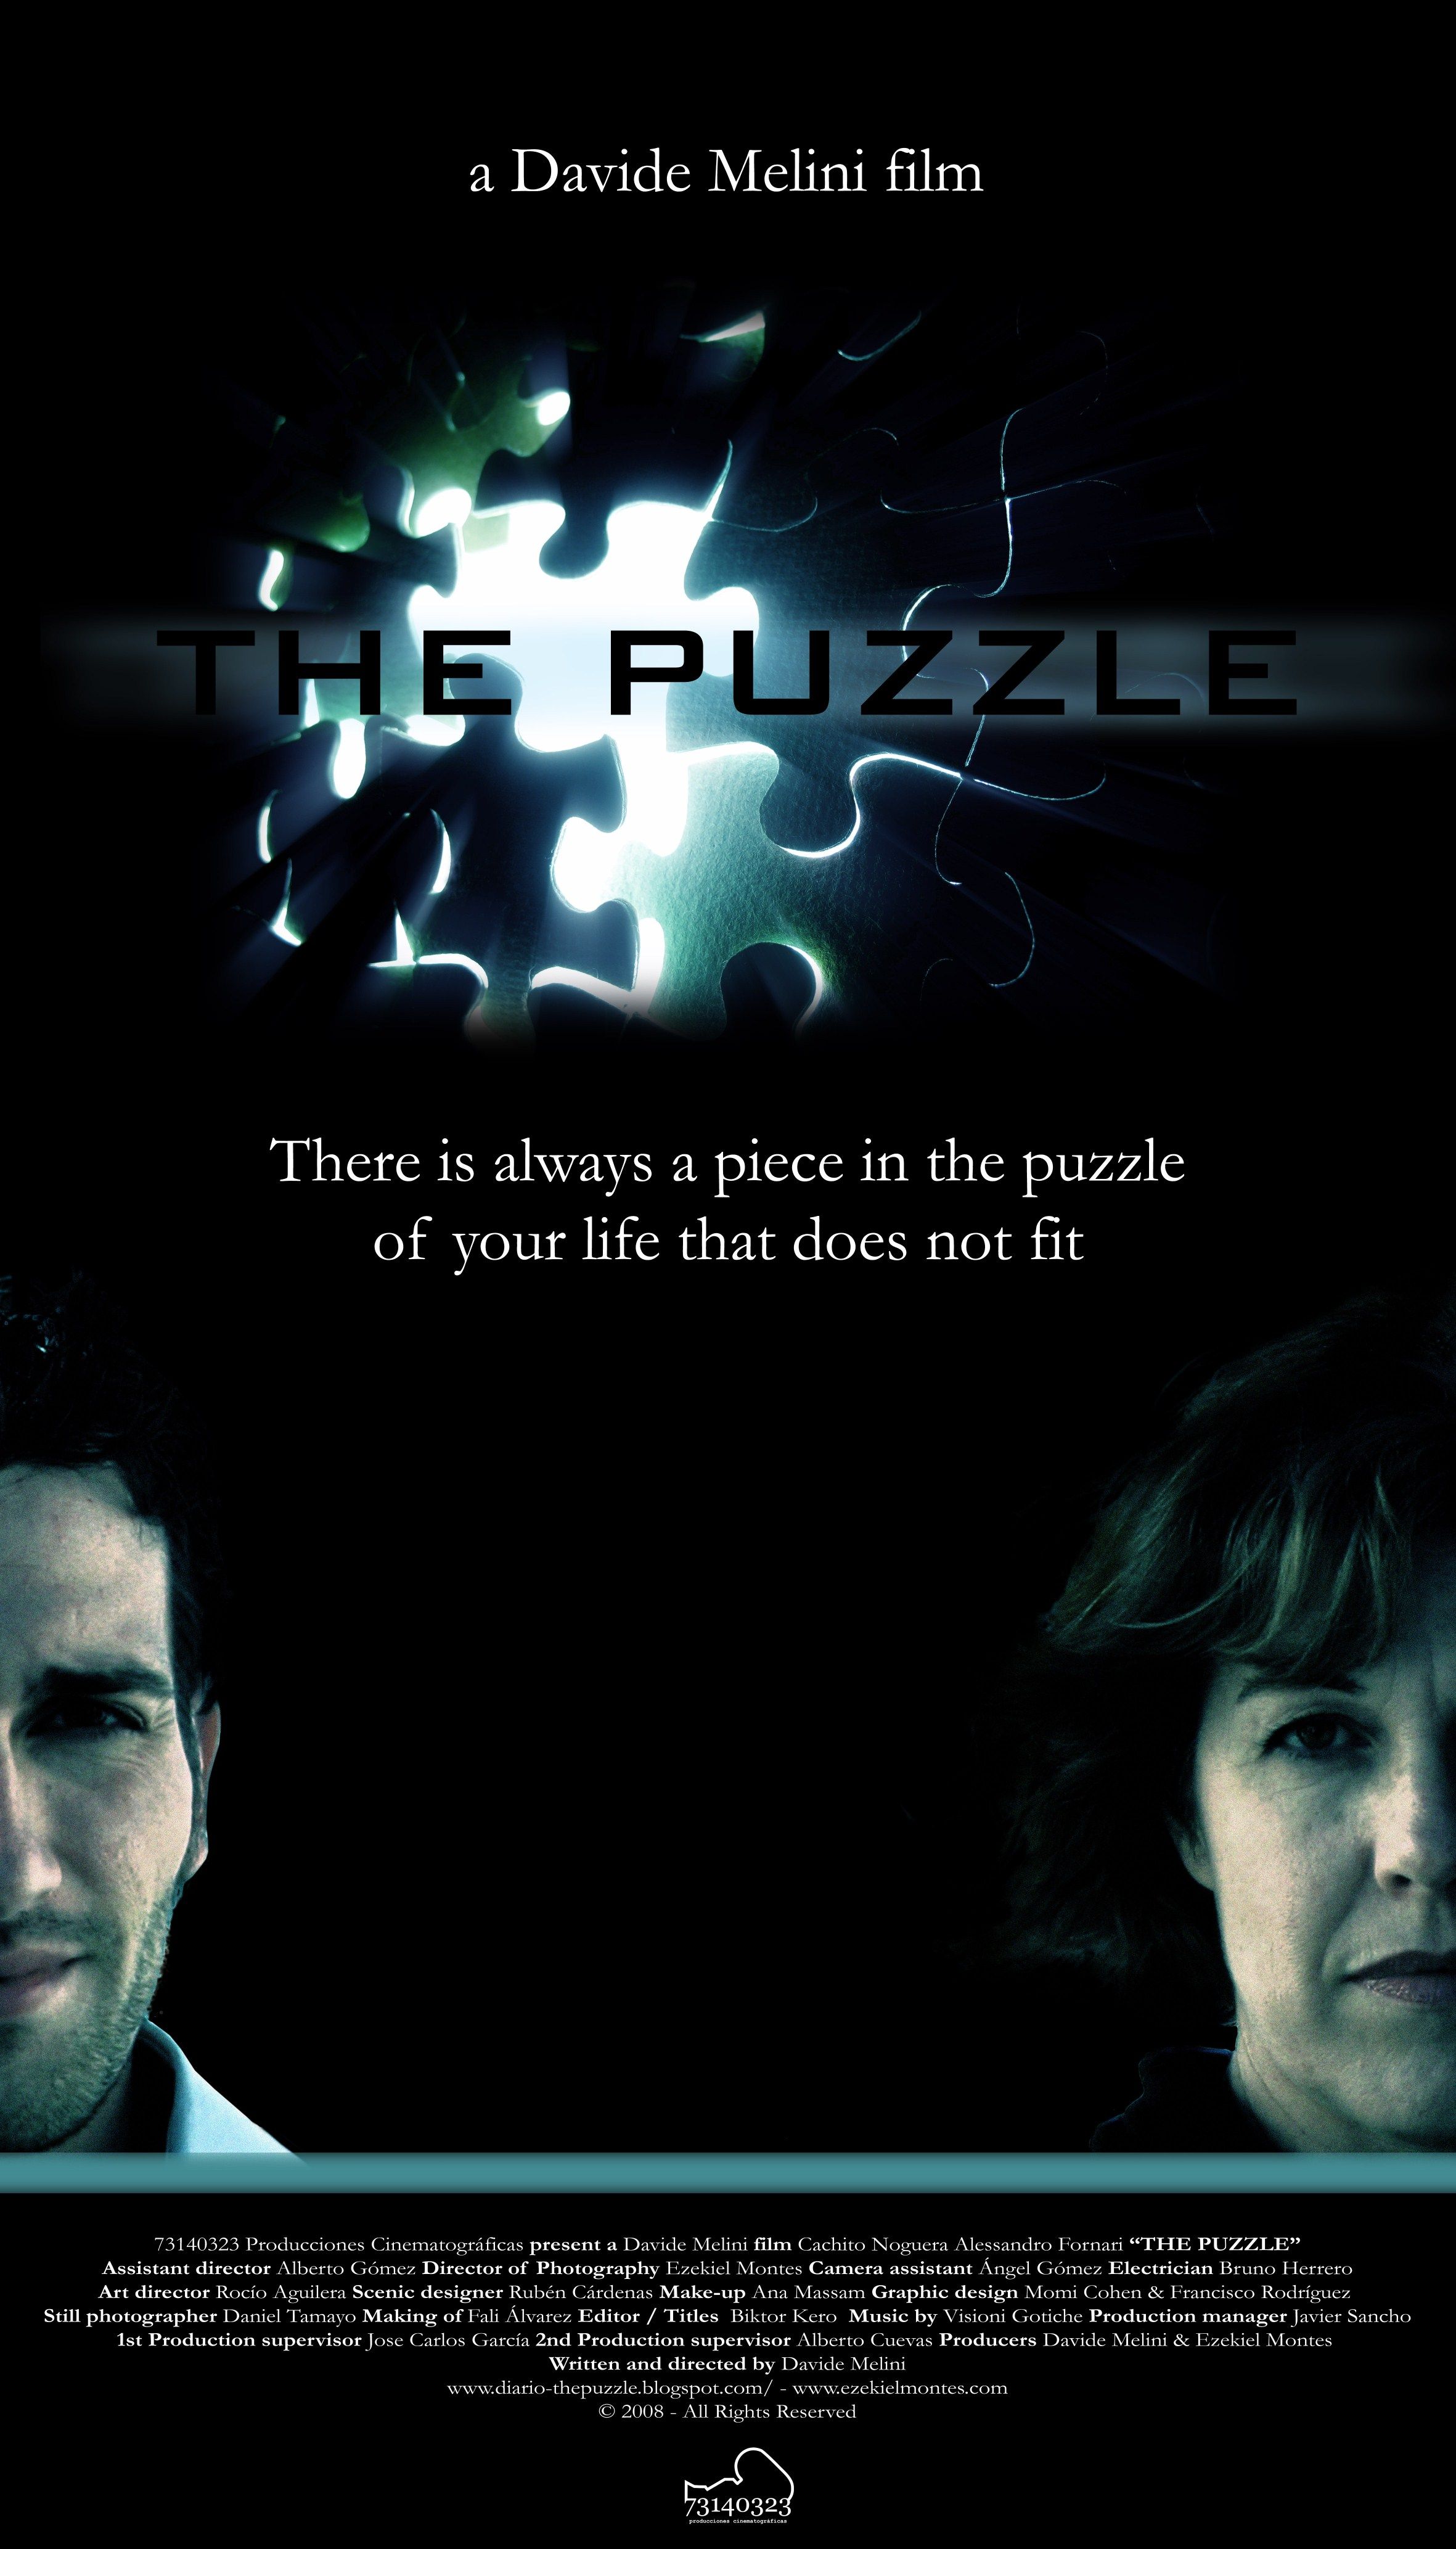 THE PUZZLE - OFFICIAL POSTER (2362 x 4134).jpg